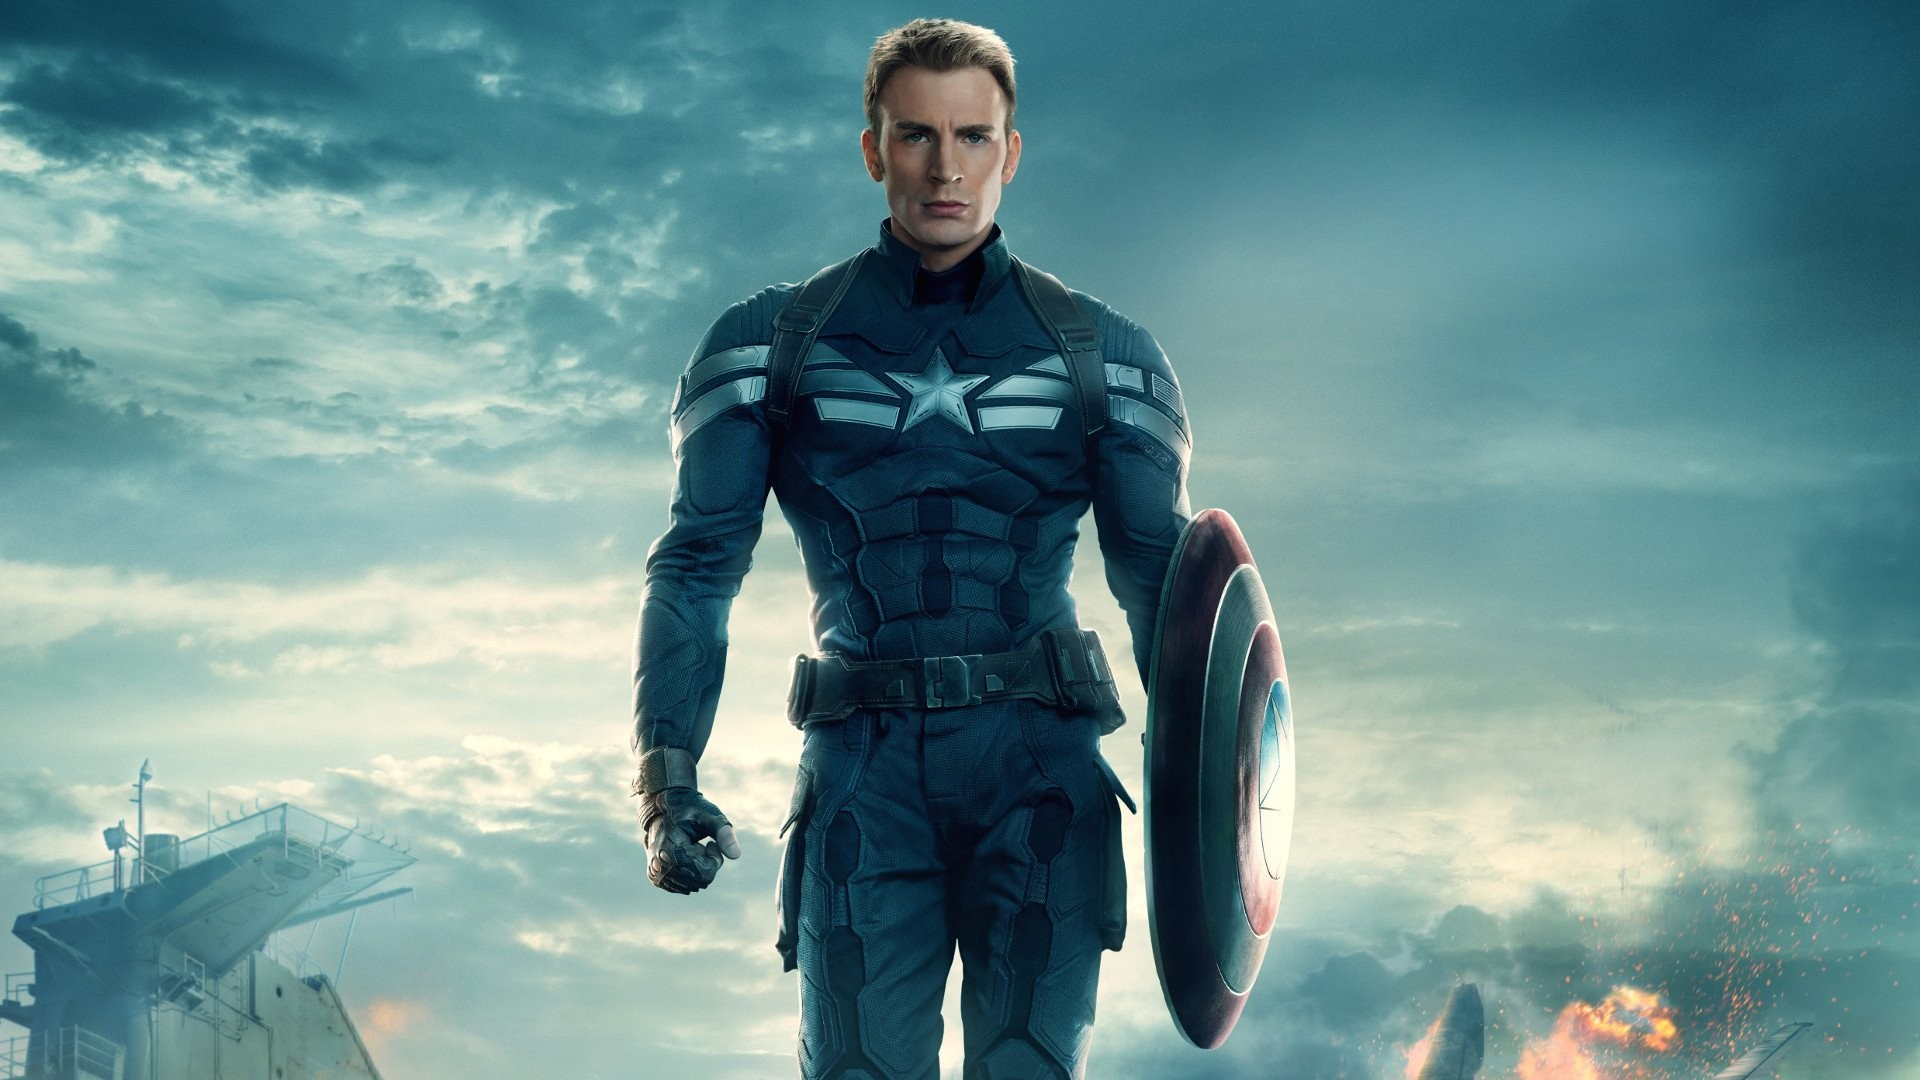 Captain america the winter soldier wallpapers wallpapertag - Captain america hd images download ...